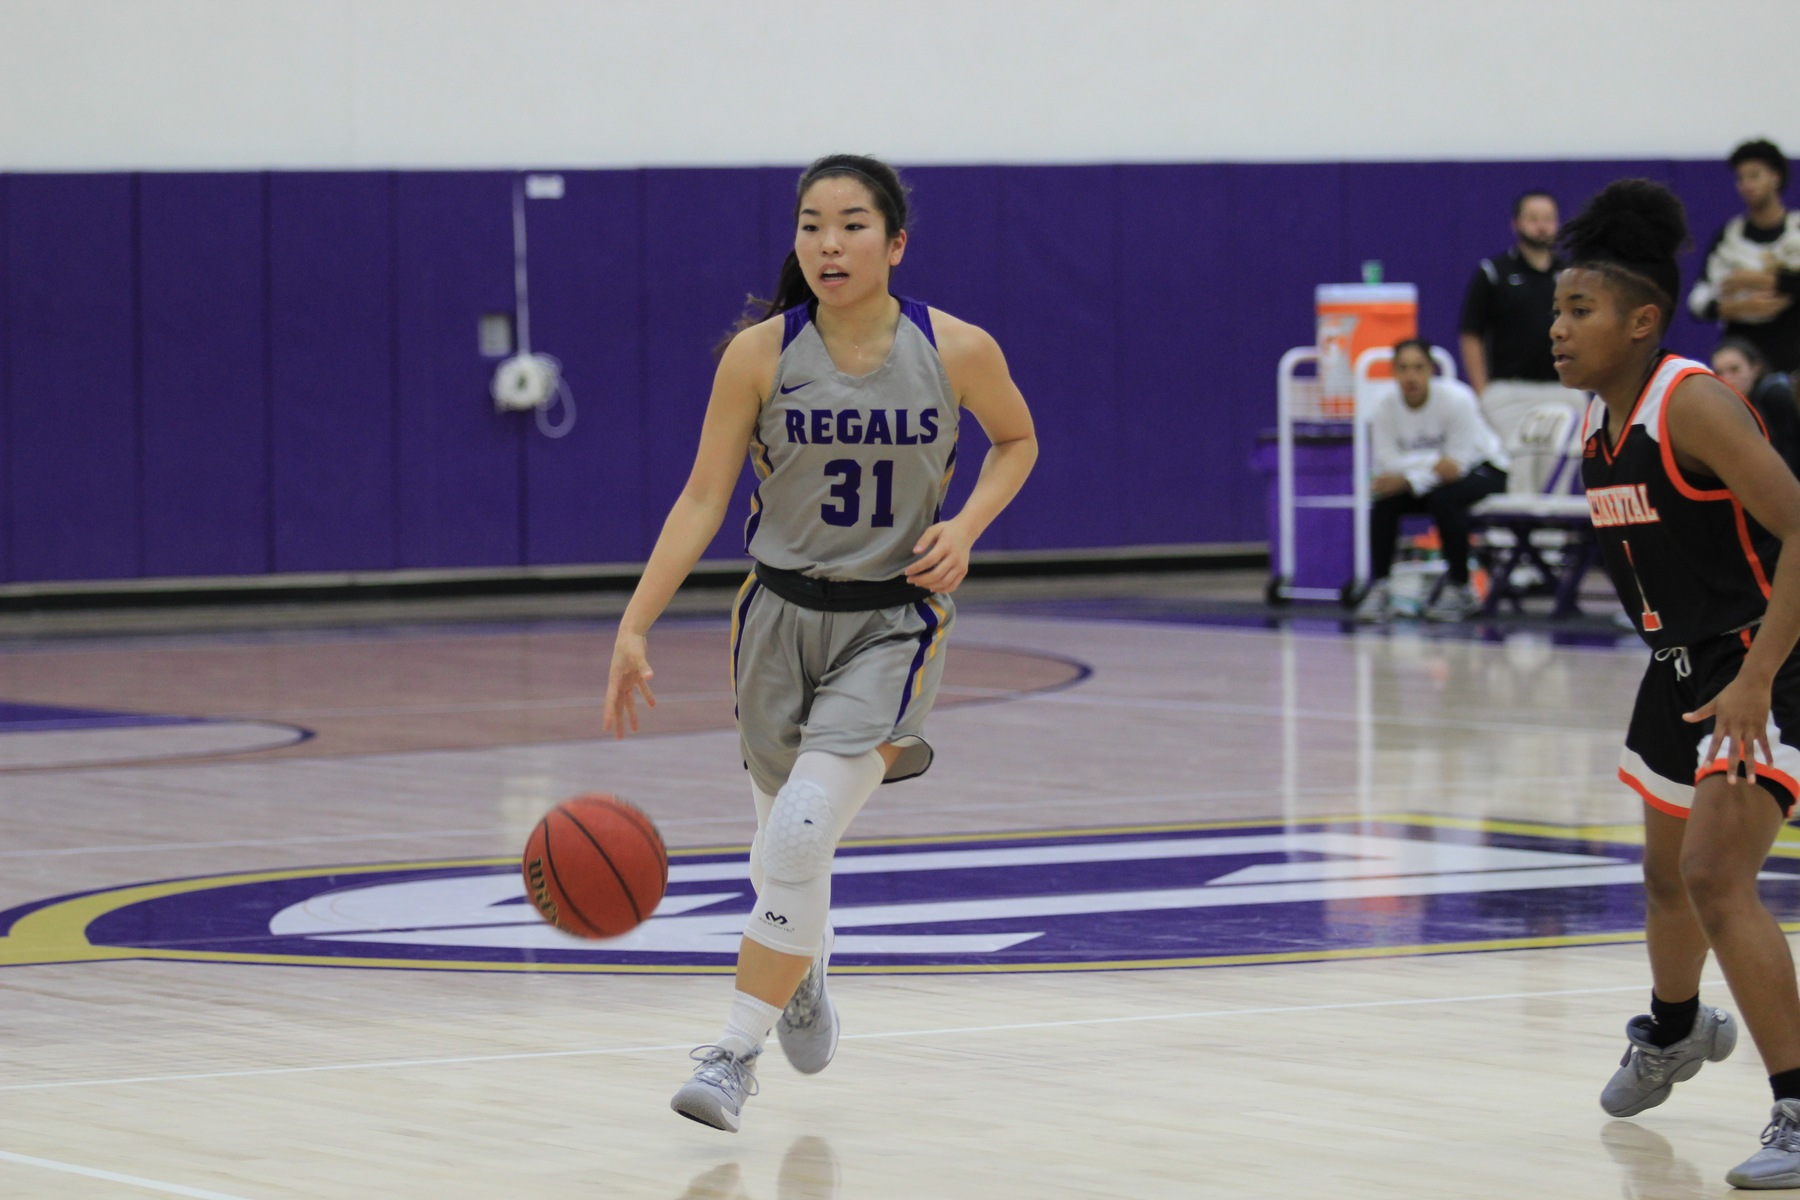 Sophomore guard Mackenzy Iwahashi knocked down a pair of free throws to give the Regals the lead with five seconds left in their 81-79 win over UC Santa Cruz. (Photo Credit: Gabby Flores)